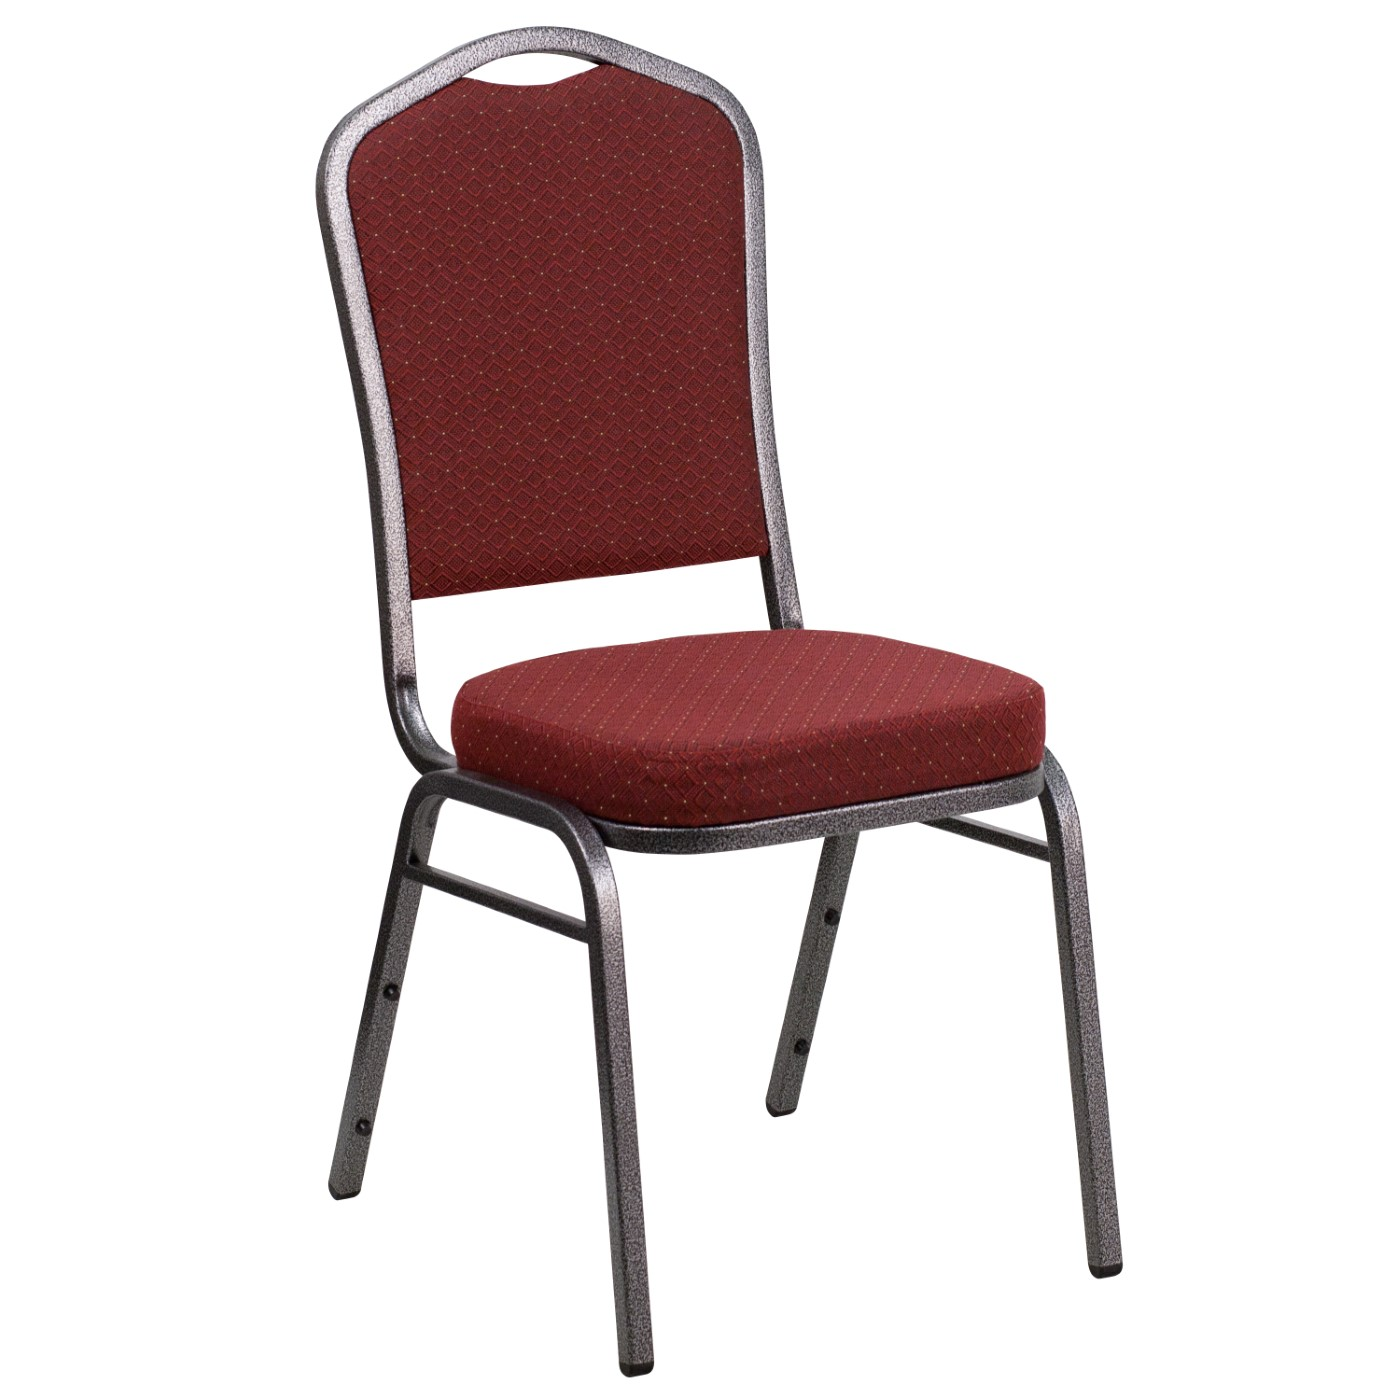 TOUGH ENOUGH Series Crown Back Stacking Banquet Chair in Burgundy Patterned Fabric - Silver Vein Frame